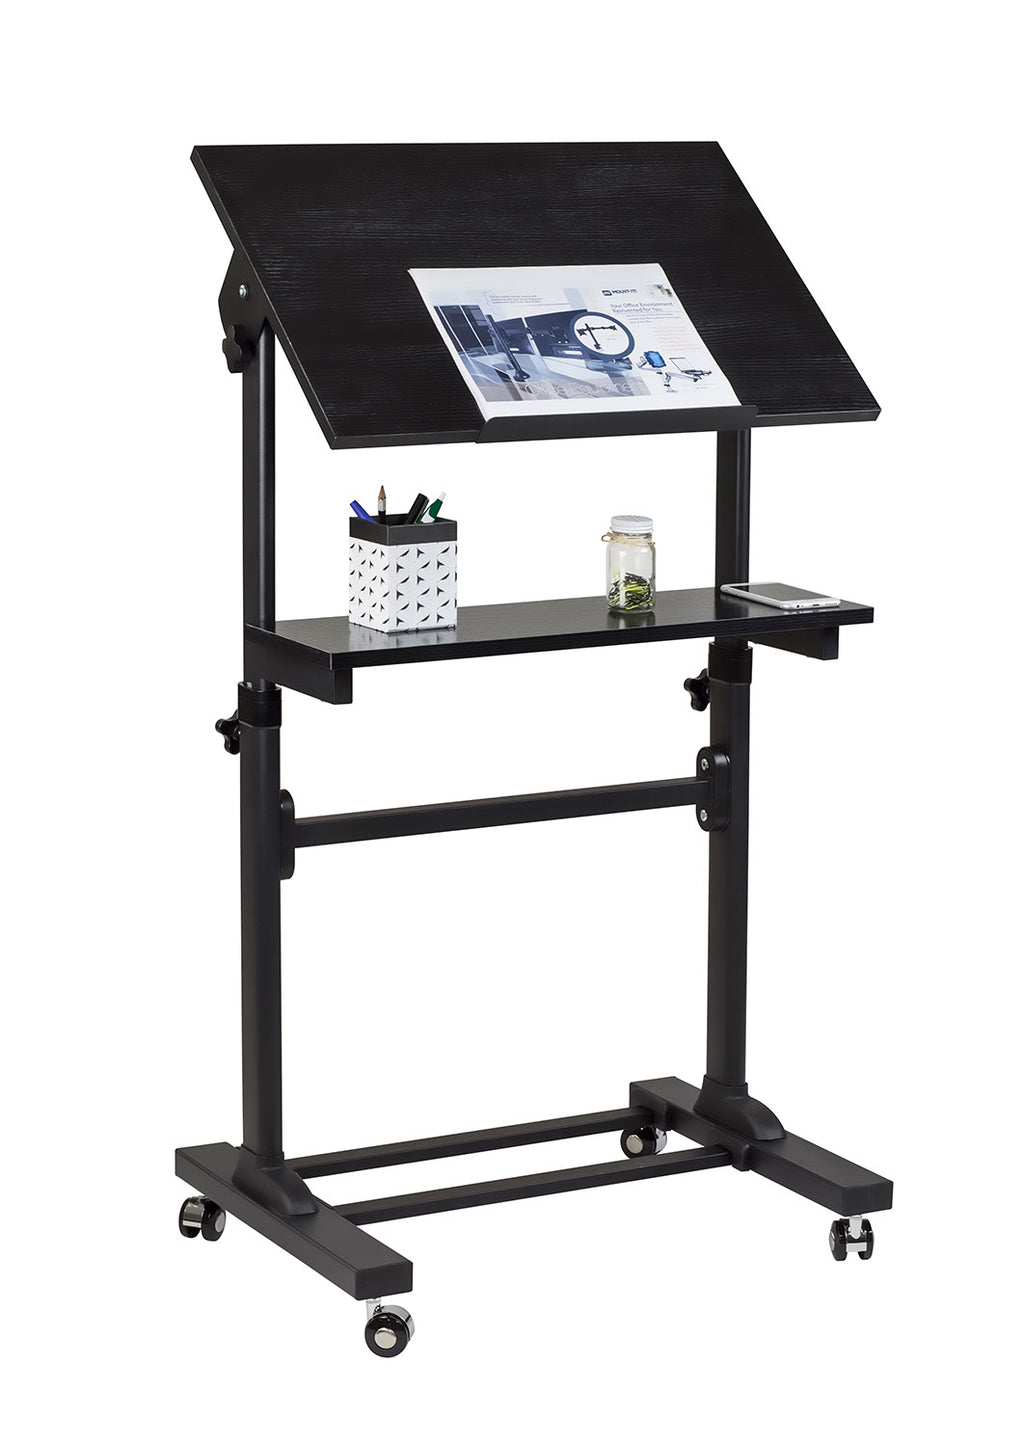 Mount-It! Heavy Duty Mobile Stand Up Desk - MI-7941 - Mount-It!